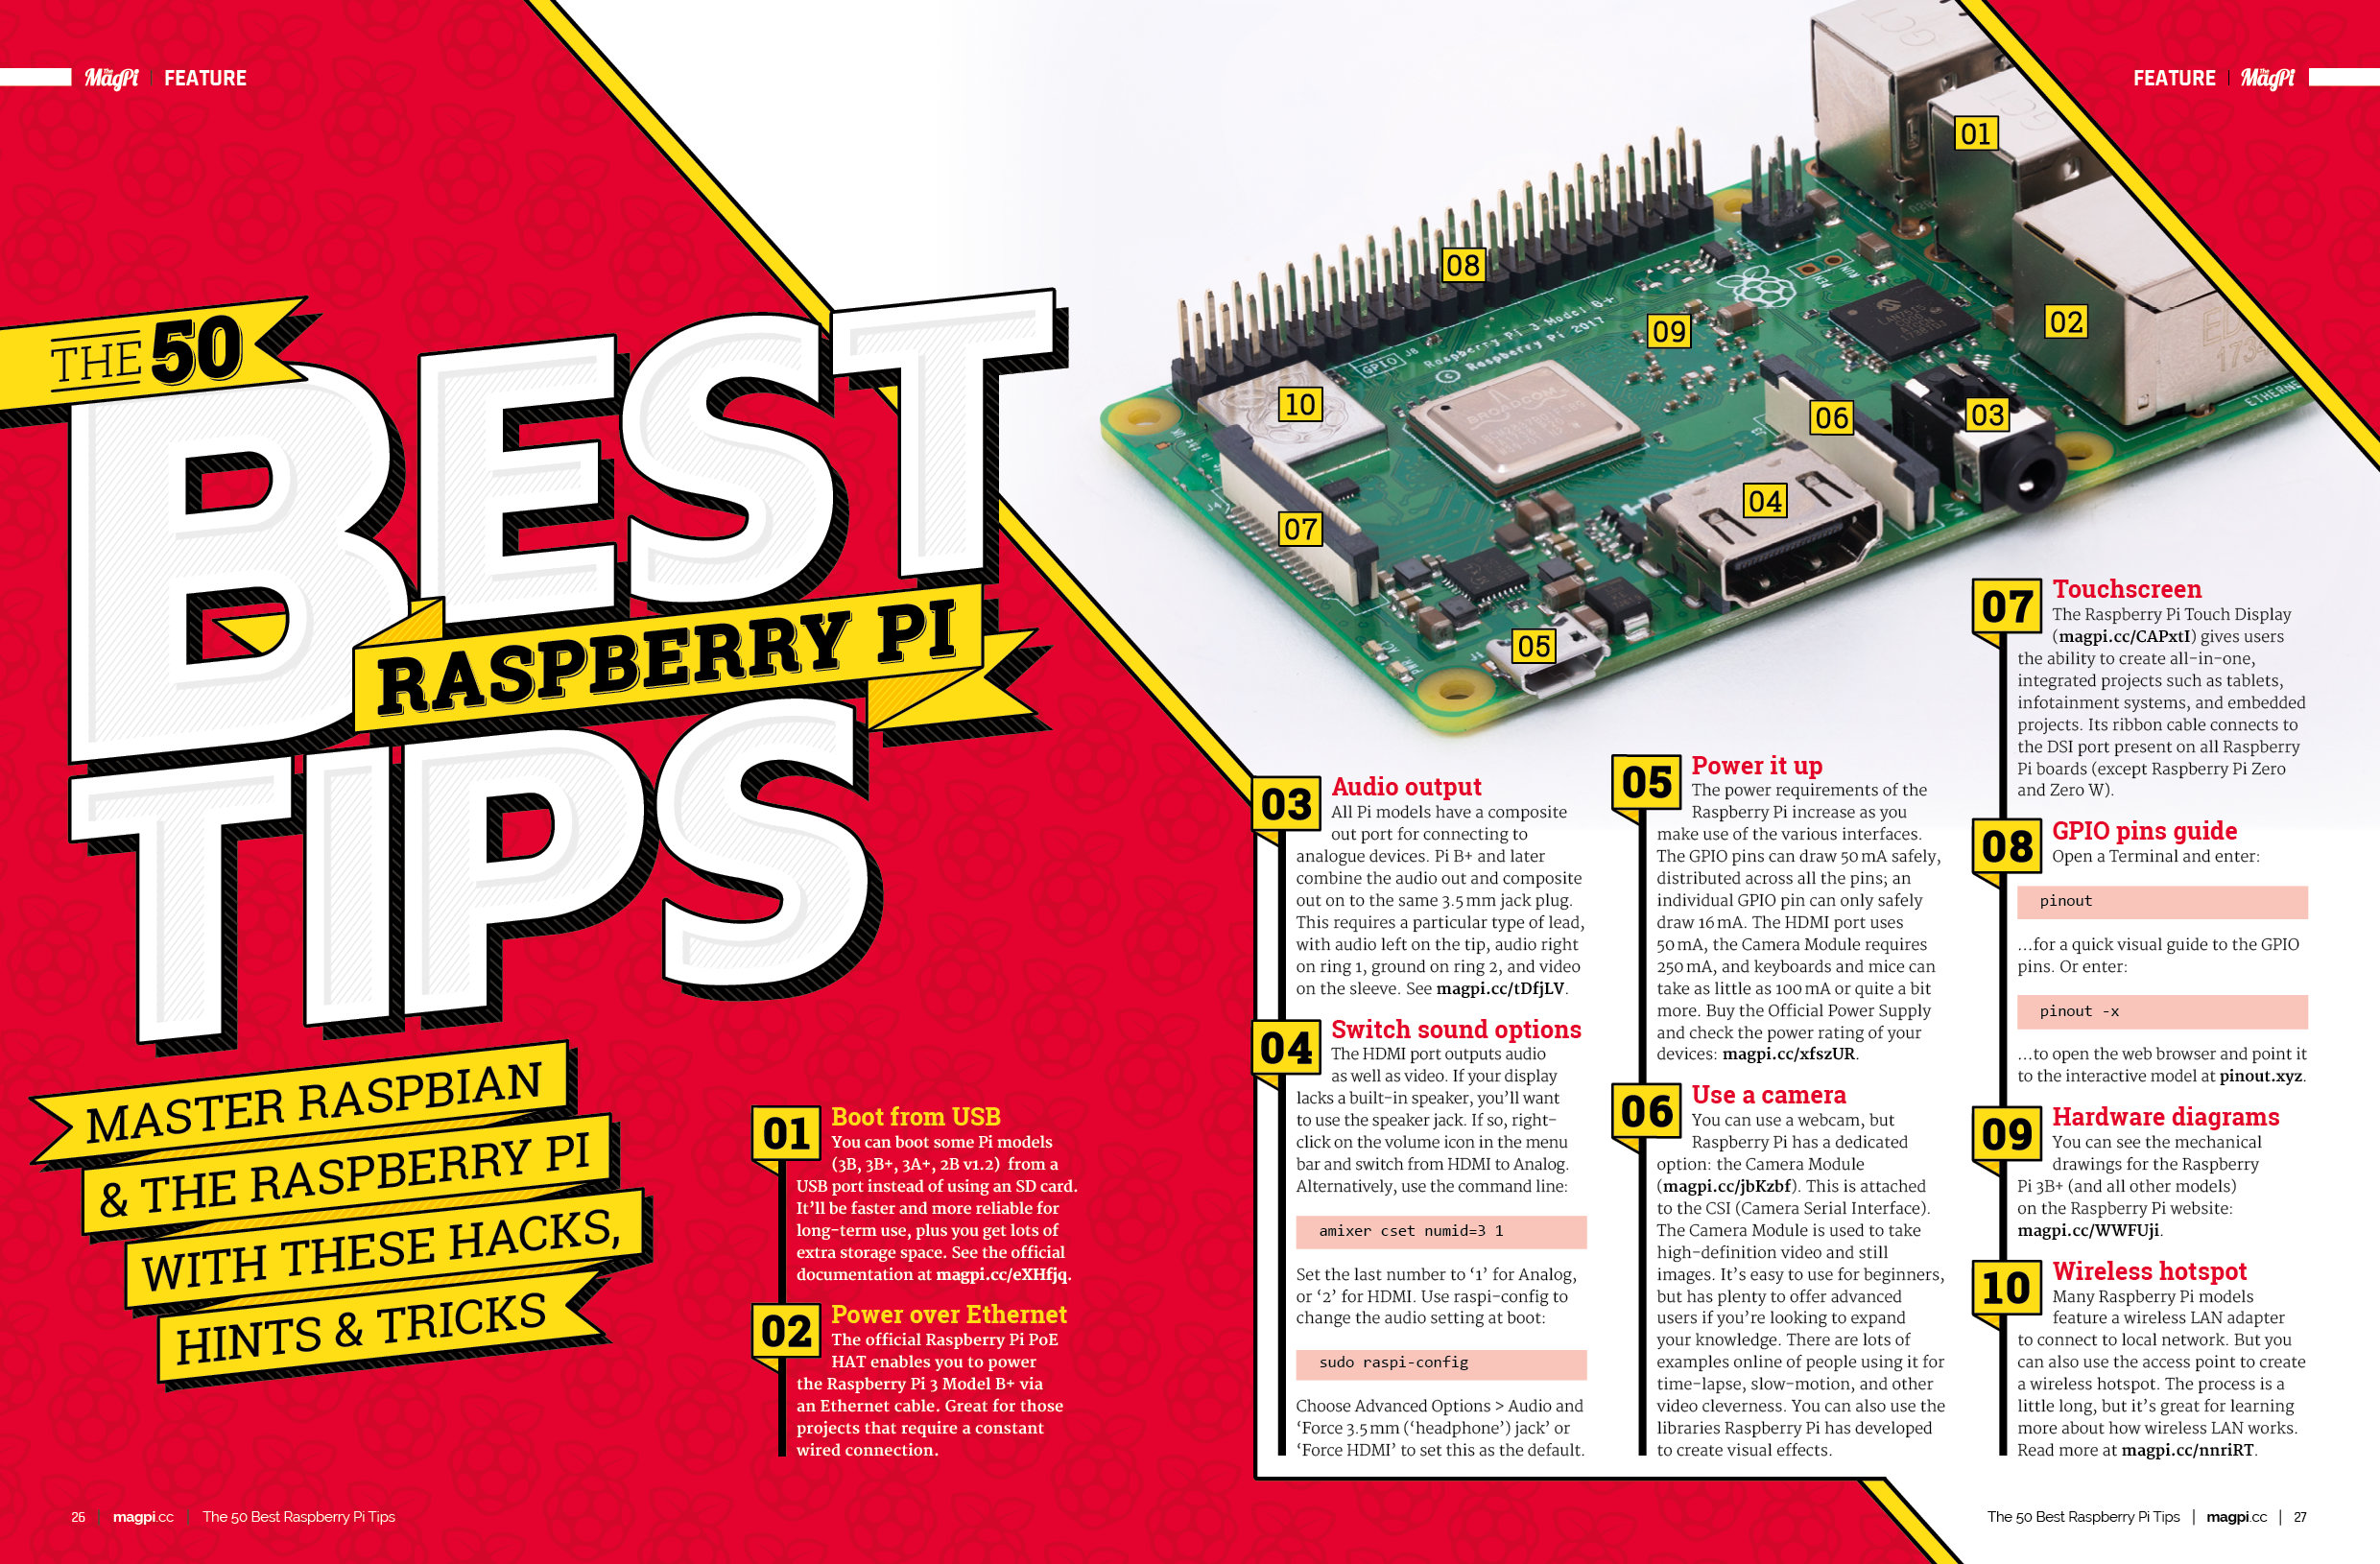 The 50 best Raspberry Pi tips in The MagPi 80